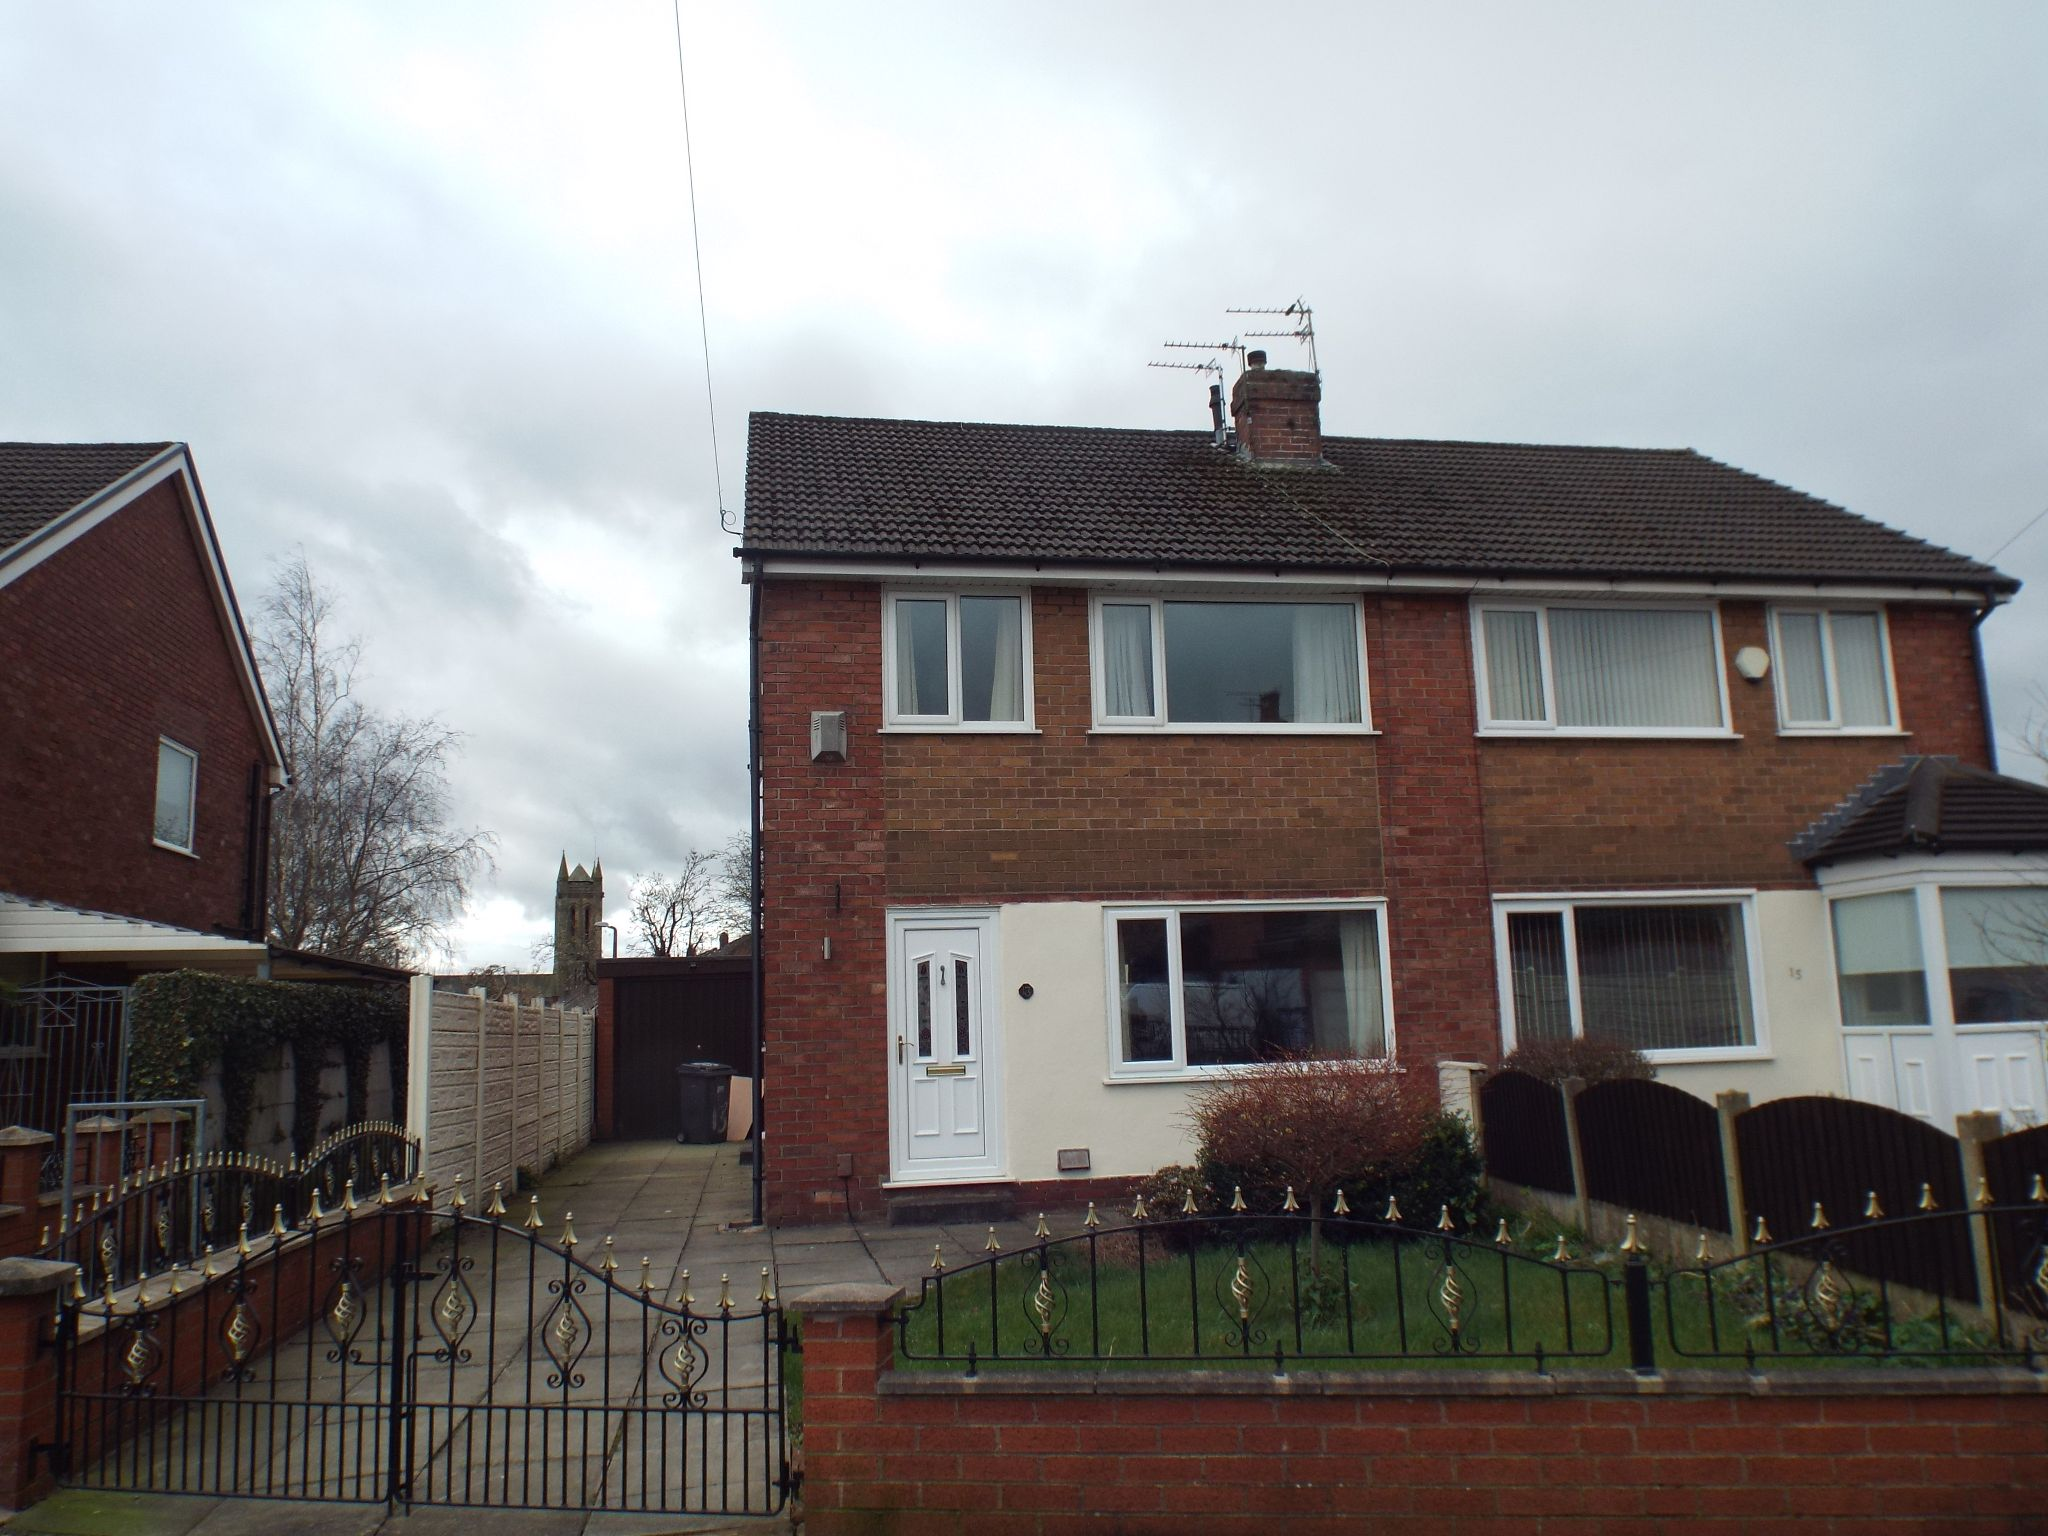 3 bedroom semi-detached house in Leyland - Photograph 1.